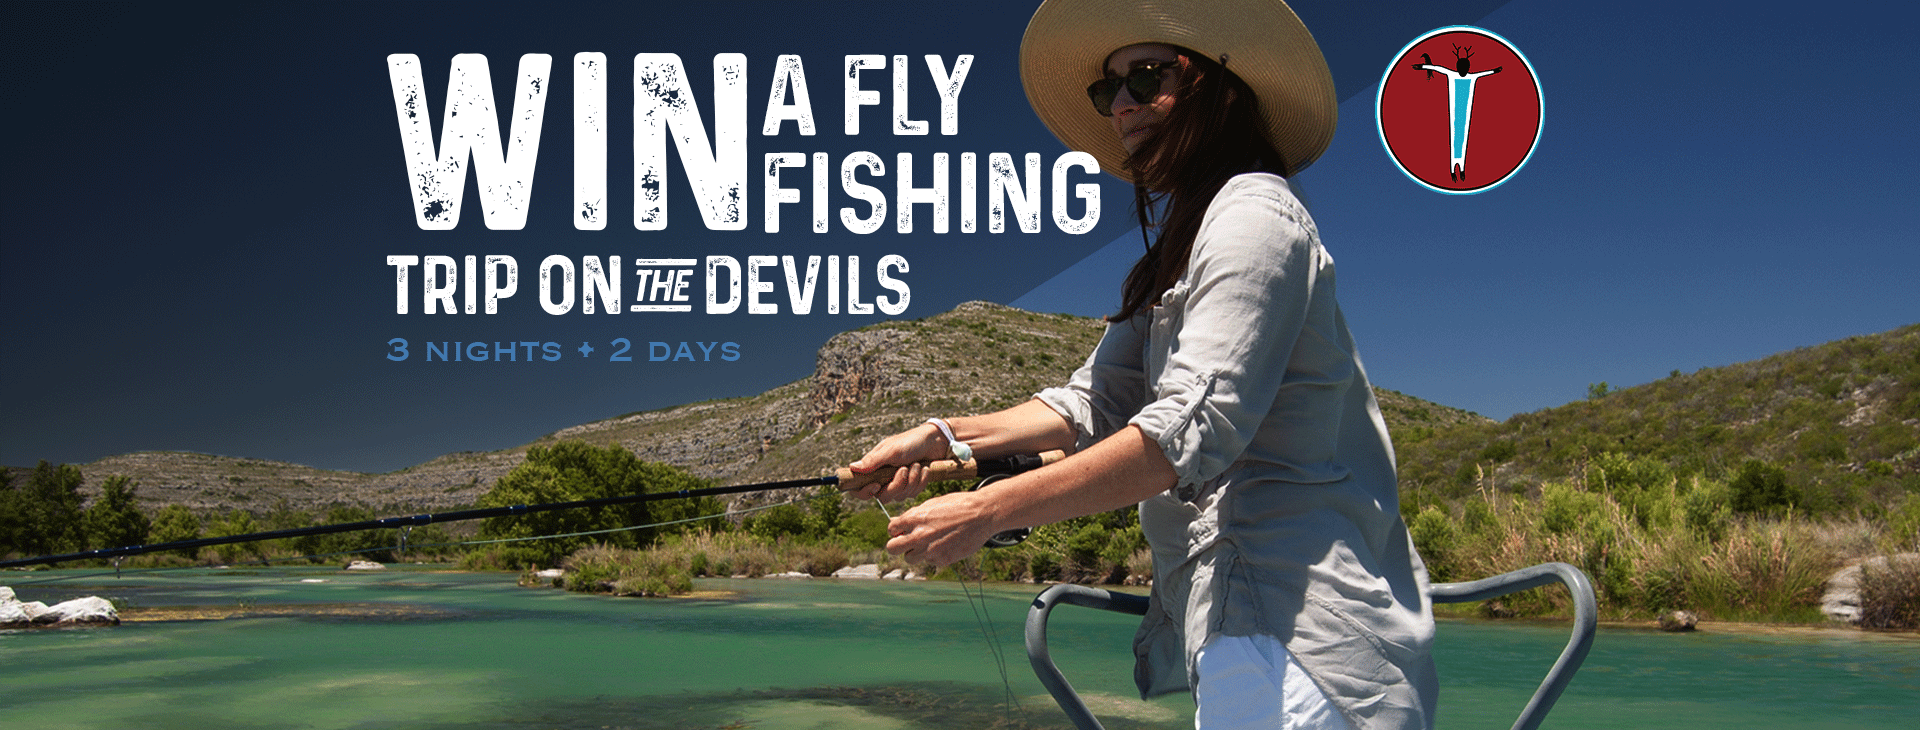 We will be announcing the winner of our exclusive raffle at Wild Devils! You have until October 9th to enter to win an unforgettable 3 night, 2 day fly fishing experience for two people with renowned fly fishing expert Kevin Stubbs of  Expedition Outfitters . Purchase your tickets today!